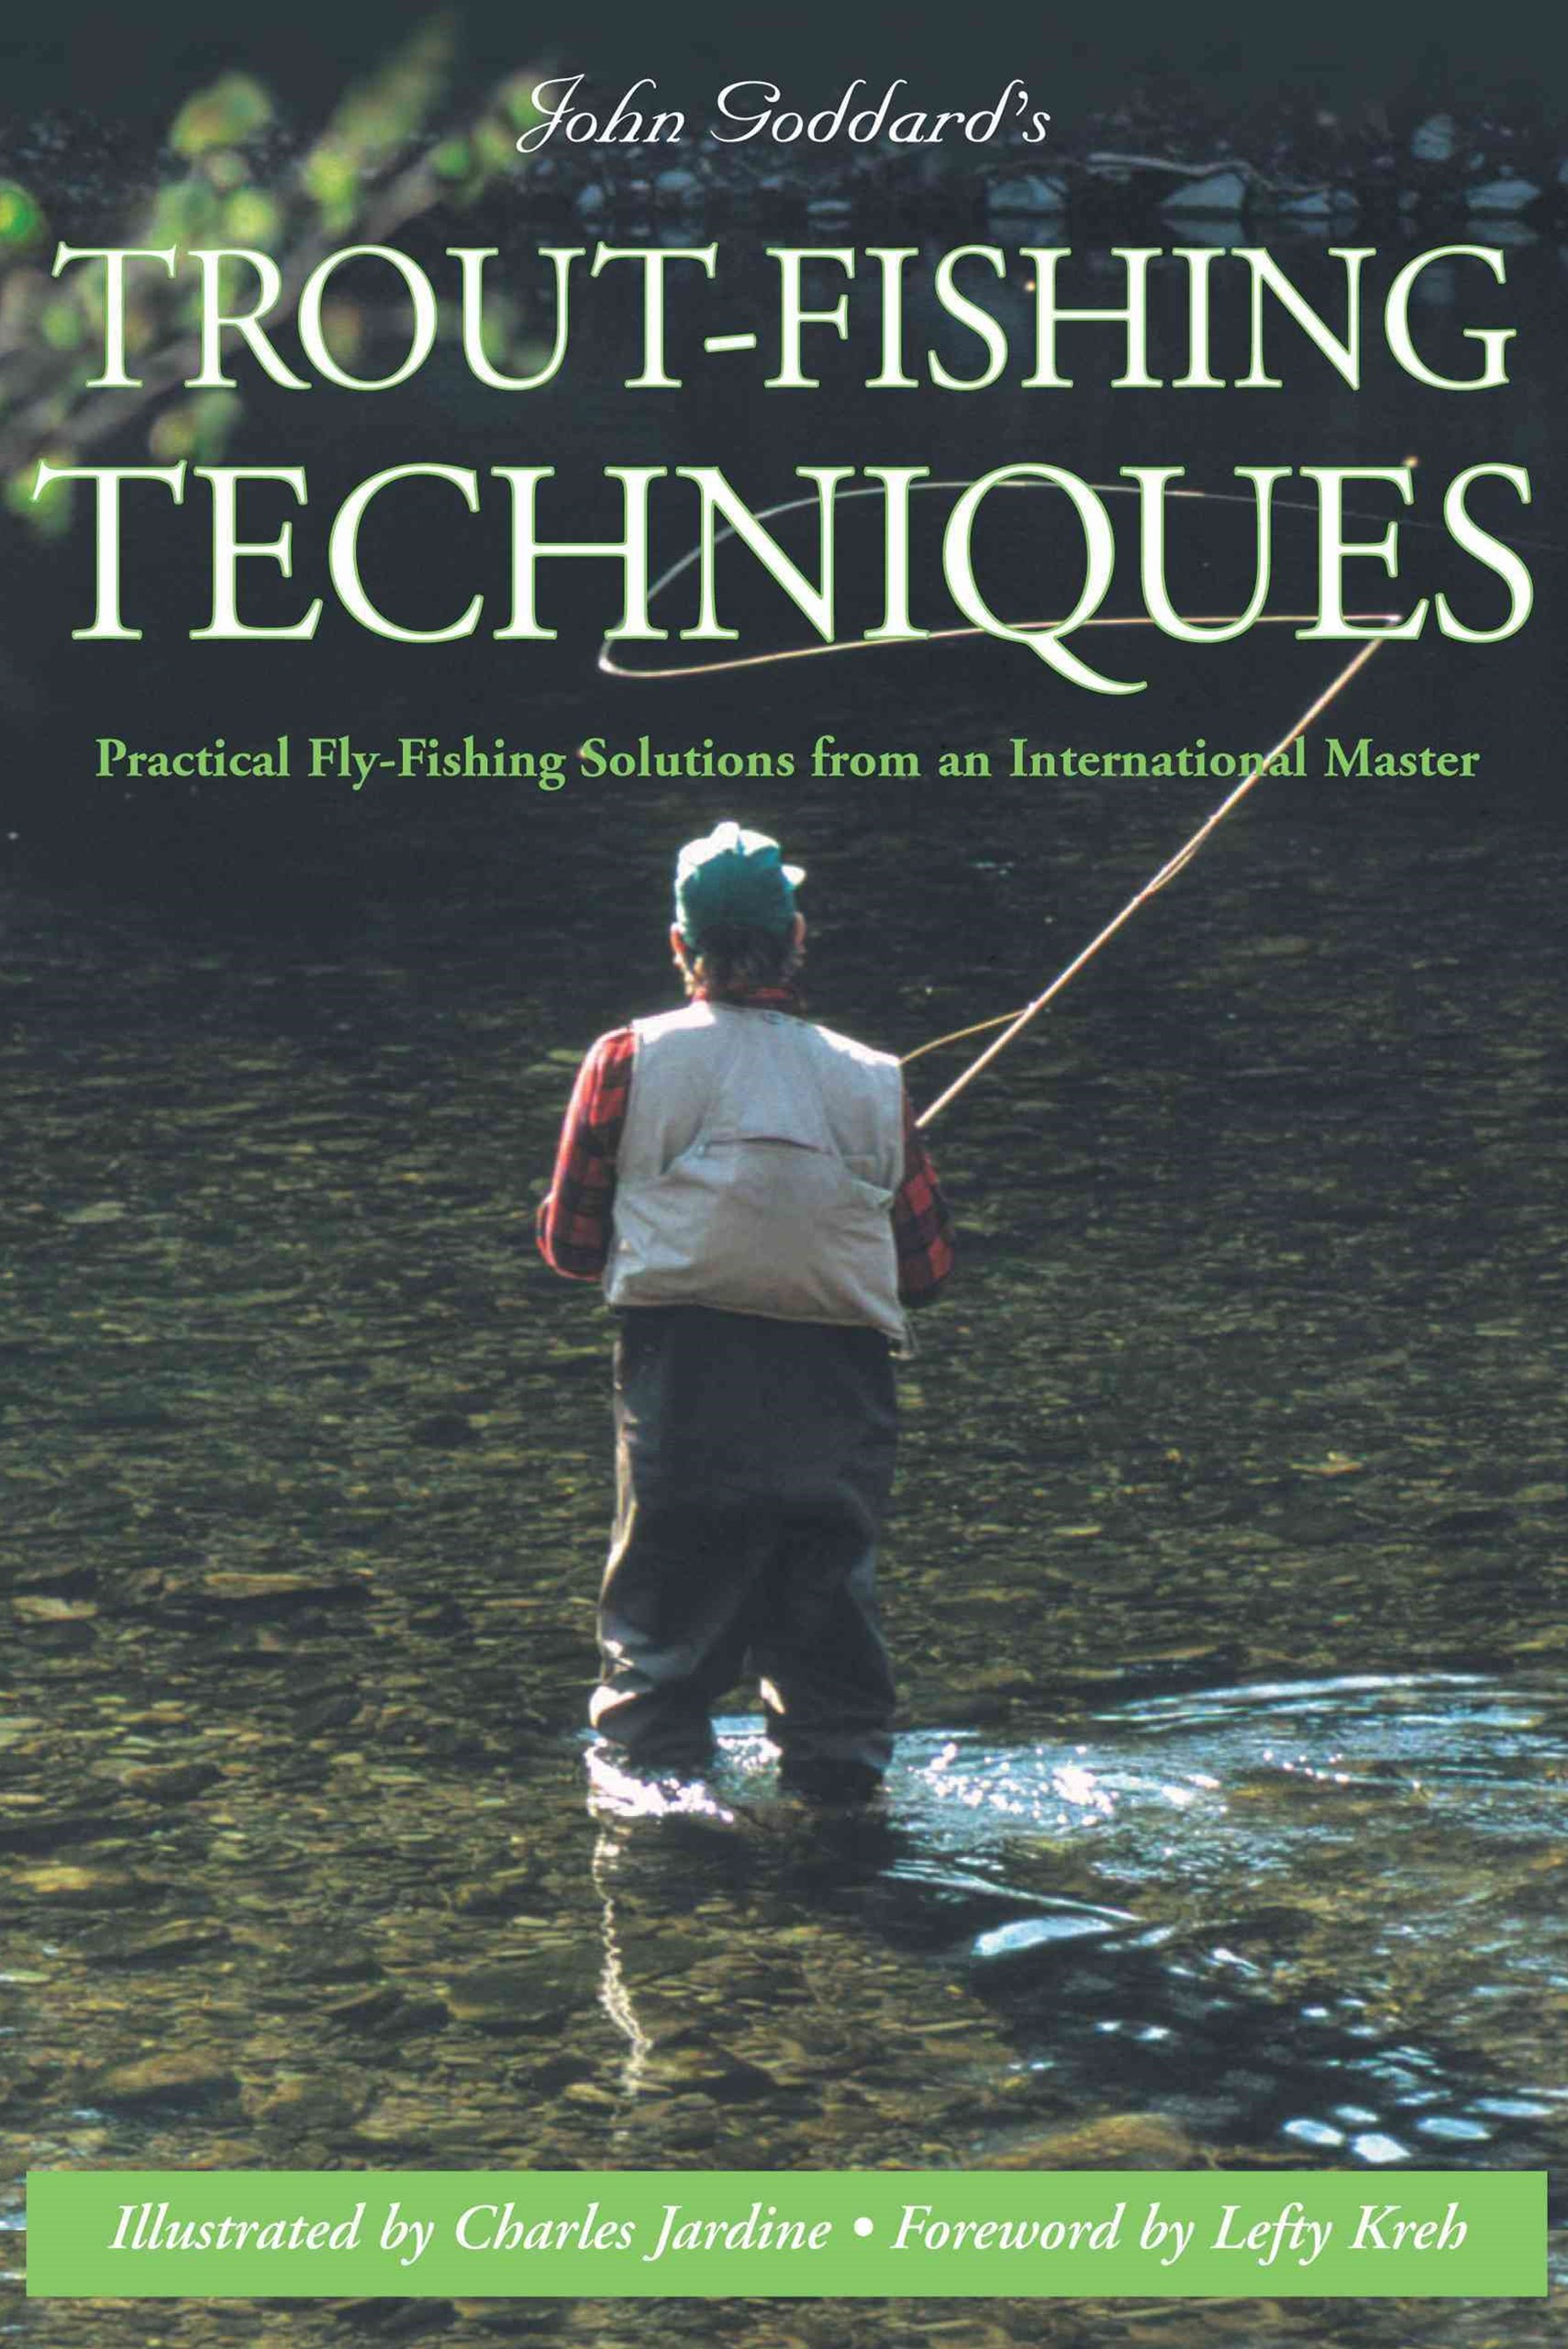 John Goddard's Trout Fishing Techniques